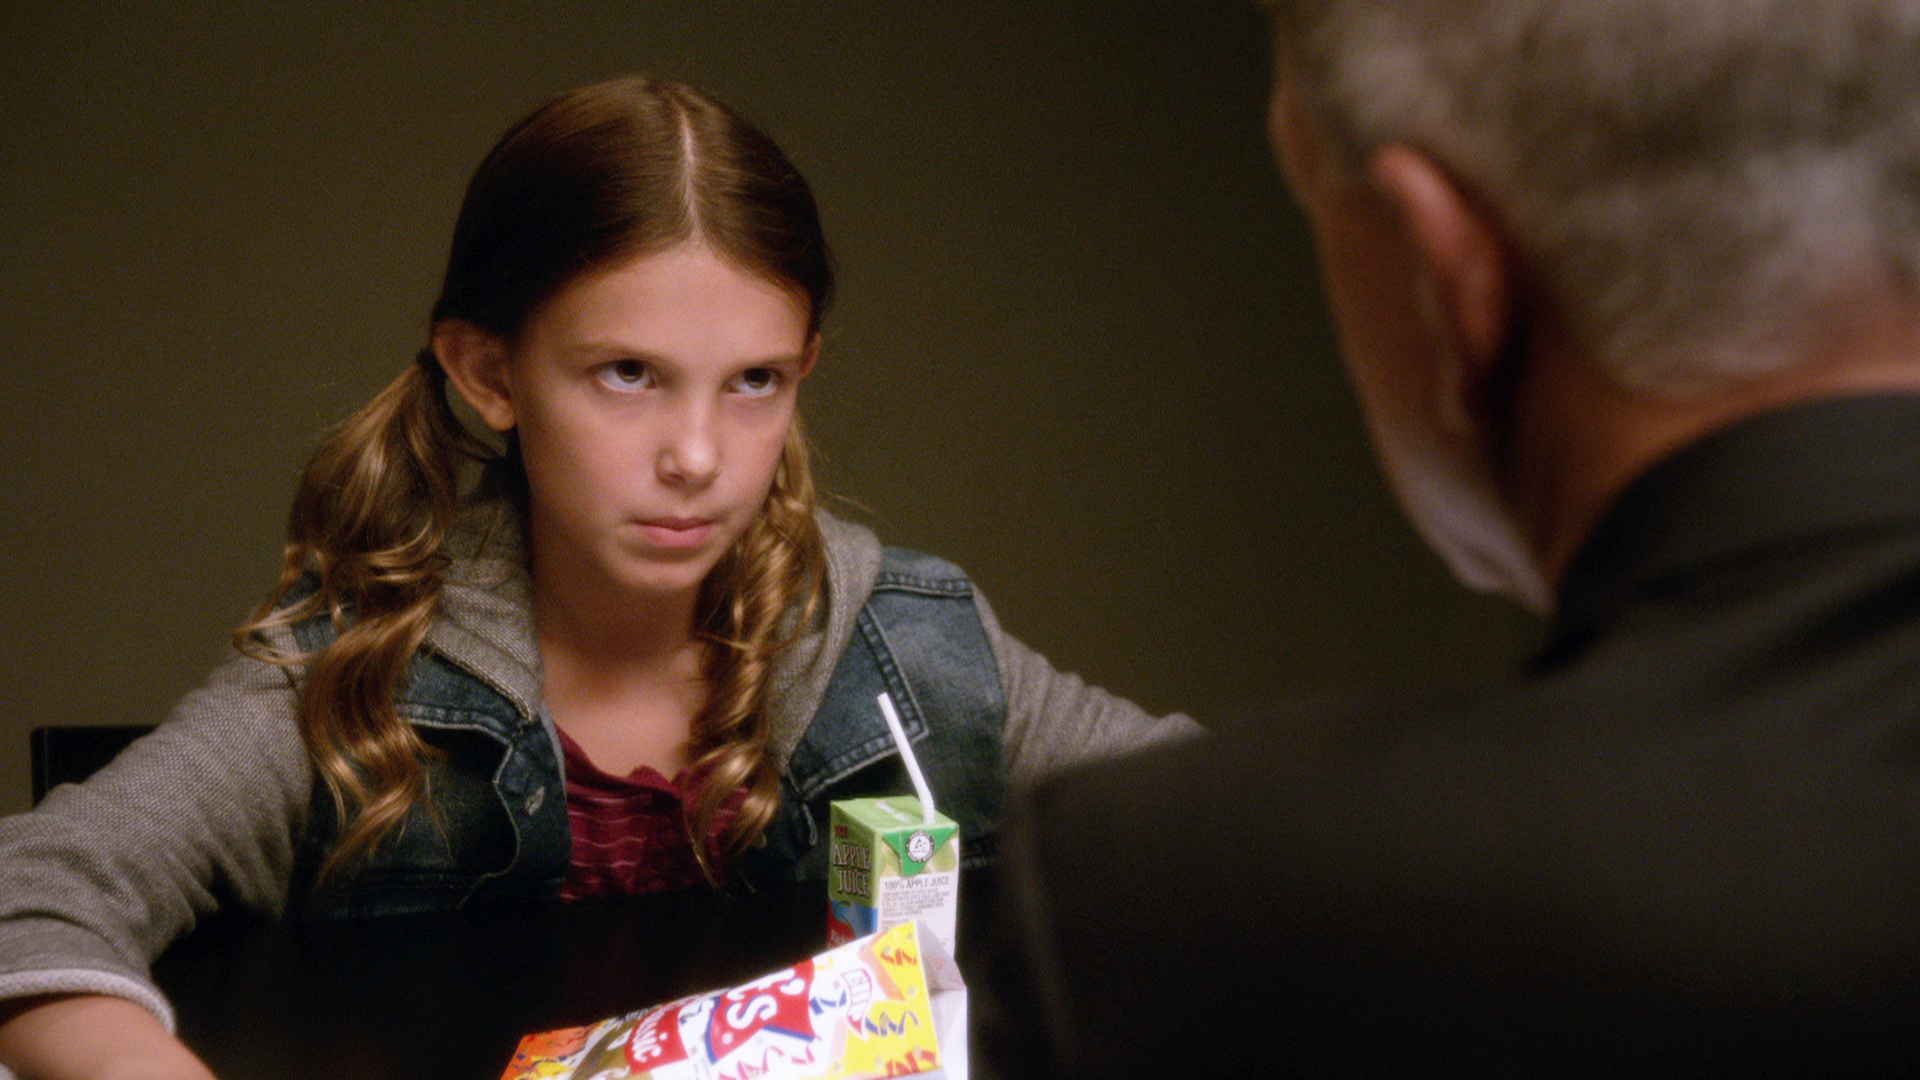 You came face-to-face with a pint-sized killer - NCIS